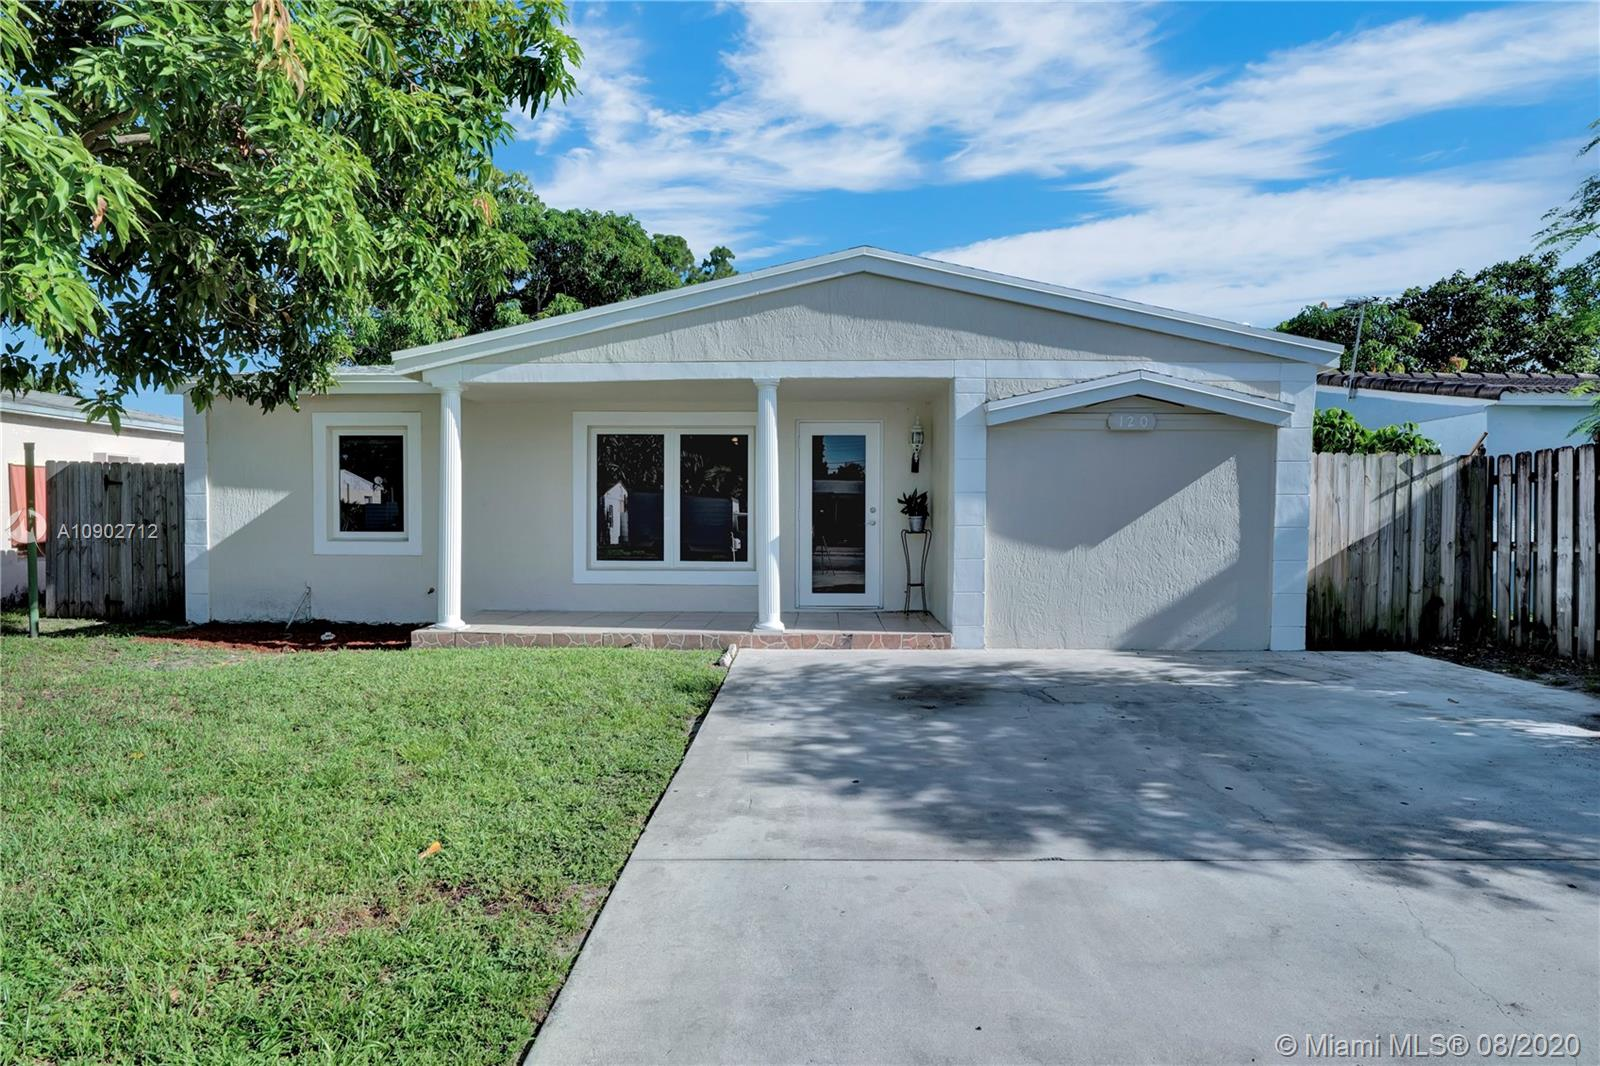 Beautiful home in a great location. New impact windows and doors. Newer roof from 2018. Tile floors throughout the house. Granite counters in the kitchen. New pantry doors. Fenced backyard with a lot of space. Palm trees in the backyard. Spacious driveway. **Please send the buyer's approval or POF to sandracasanova@kw.com before showing**at the seller's request we will not approve showings until approval has been submitted.**